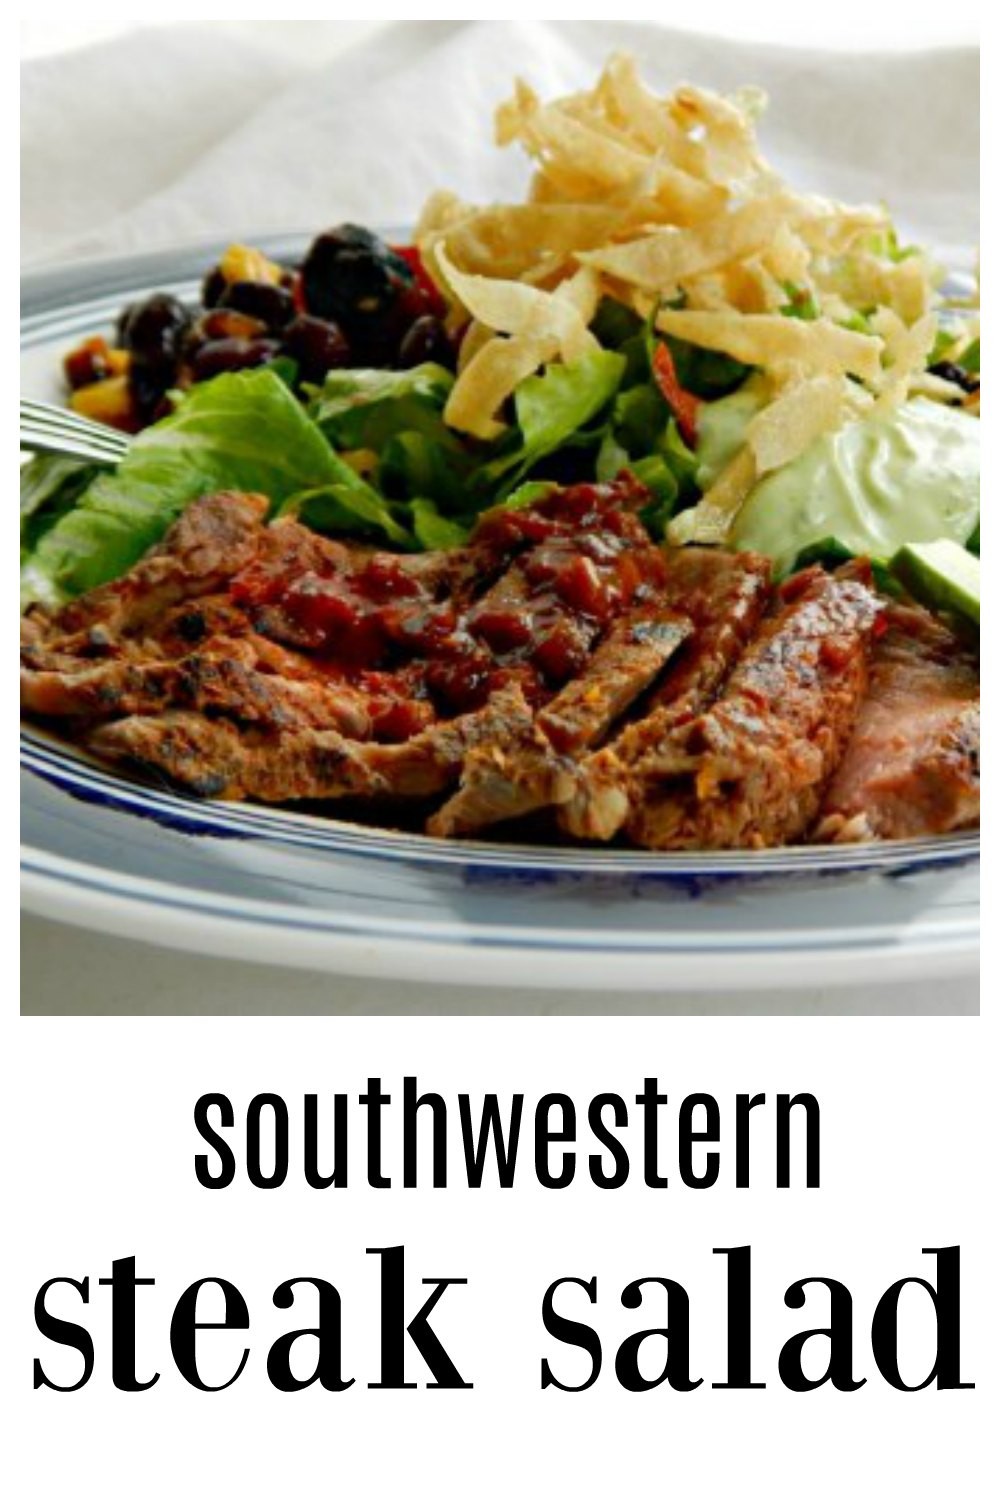 This Southwestern Steak Salad is fabulous! Carne Asada Steak, Roasted Corn & Black Bean Salad, Avocado Cilantro Lime Dressing! Inspired by Applebees, the tangle of tortilla chips atop steal the show! There's something for everyone. #SouthwesternSteakSalad #CarneAsadoSteakSalad #SteakSalad #MainDishSalad